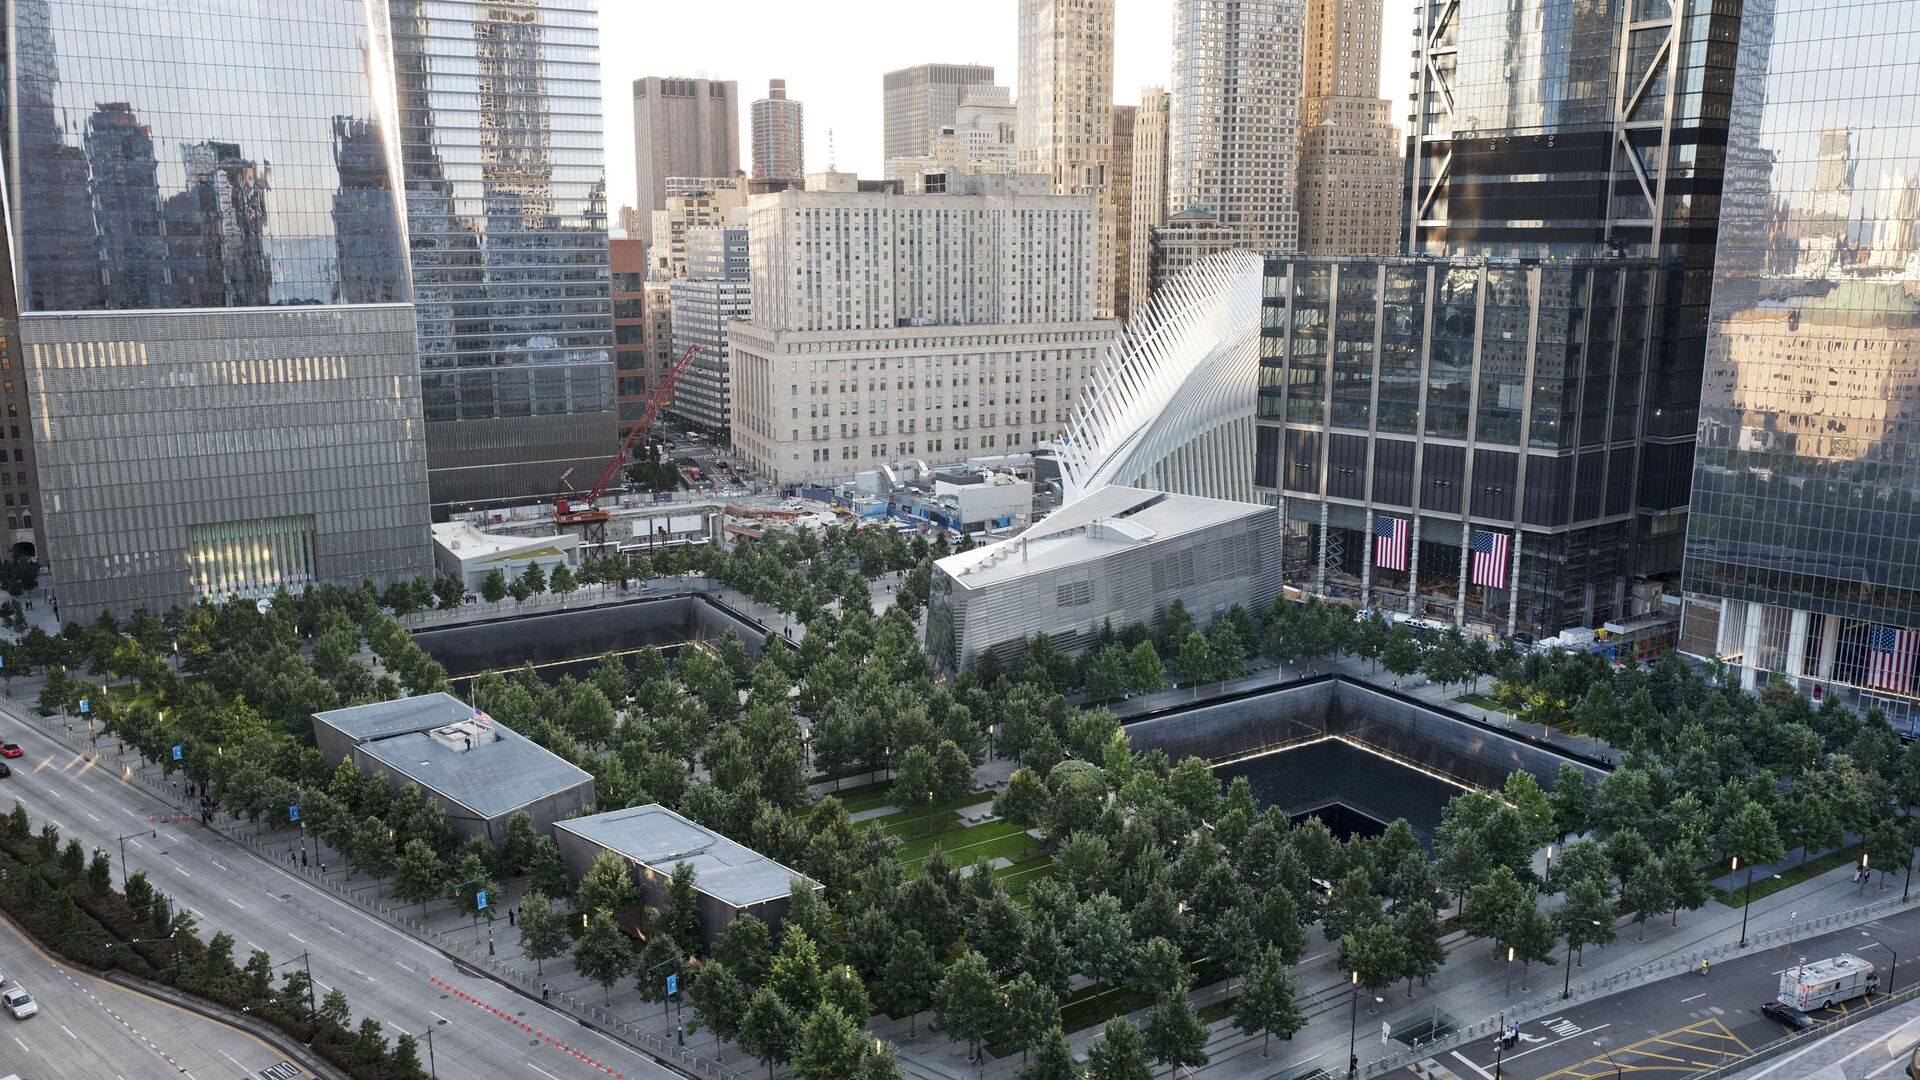 The National September 11 Memorial and Museum are set for a memorial service, Monday, Sept. 11, 2017, in New York. Thousands of 9/11 victims' relatives, survivors, rescuers and others are expected to gather Monday at the World Trade Center to remember the deadliest terror attack on American soil. Nearly 3,000 people died when hijacked planes slammed into the trade center, the Pentagon and a field near Shanksville, Pa., on Sept. 11, 2001.  - Sputnik International, 1920, 03.09.2021